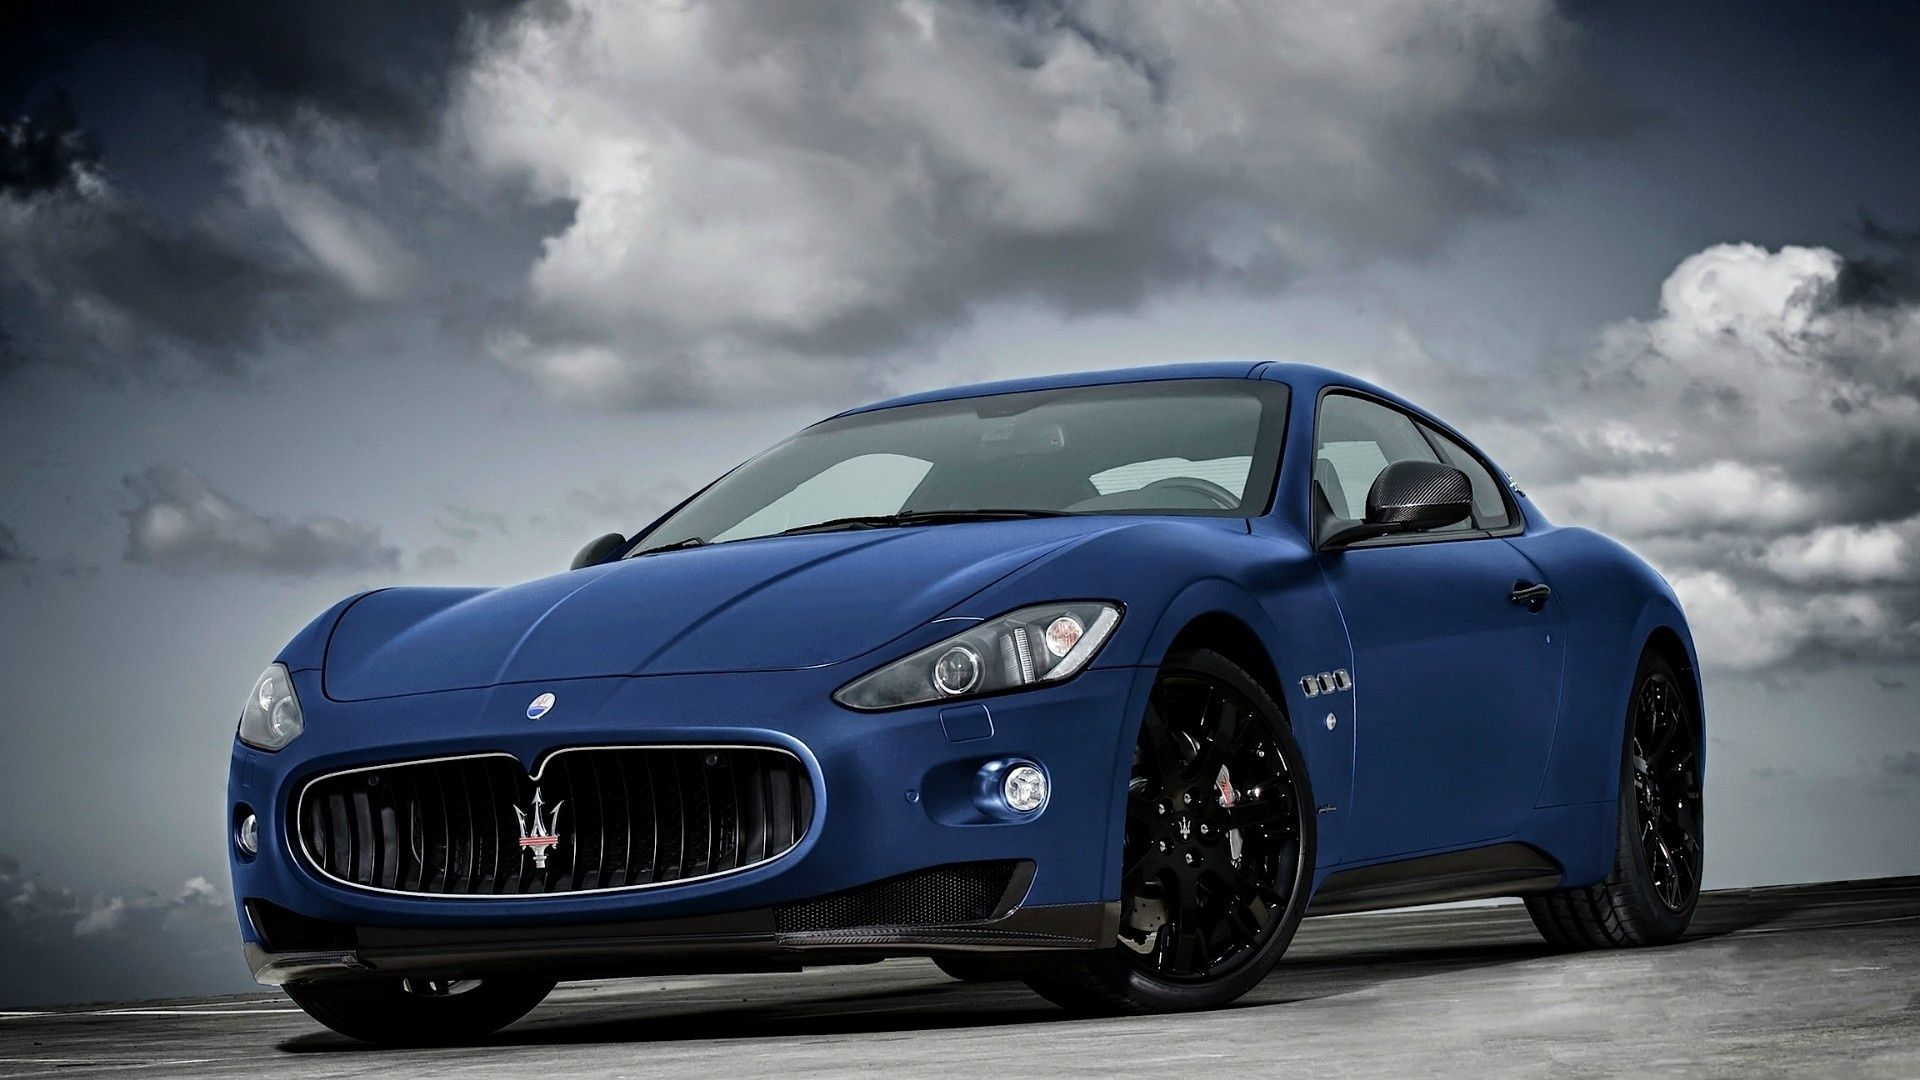 maserati car wallpapers 5 maserati car wallpapers pinterest maserati car car wallpapers. Black Bedroom Furniture Sets. Home Design Ideas